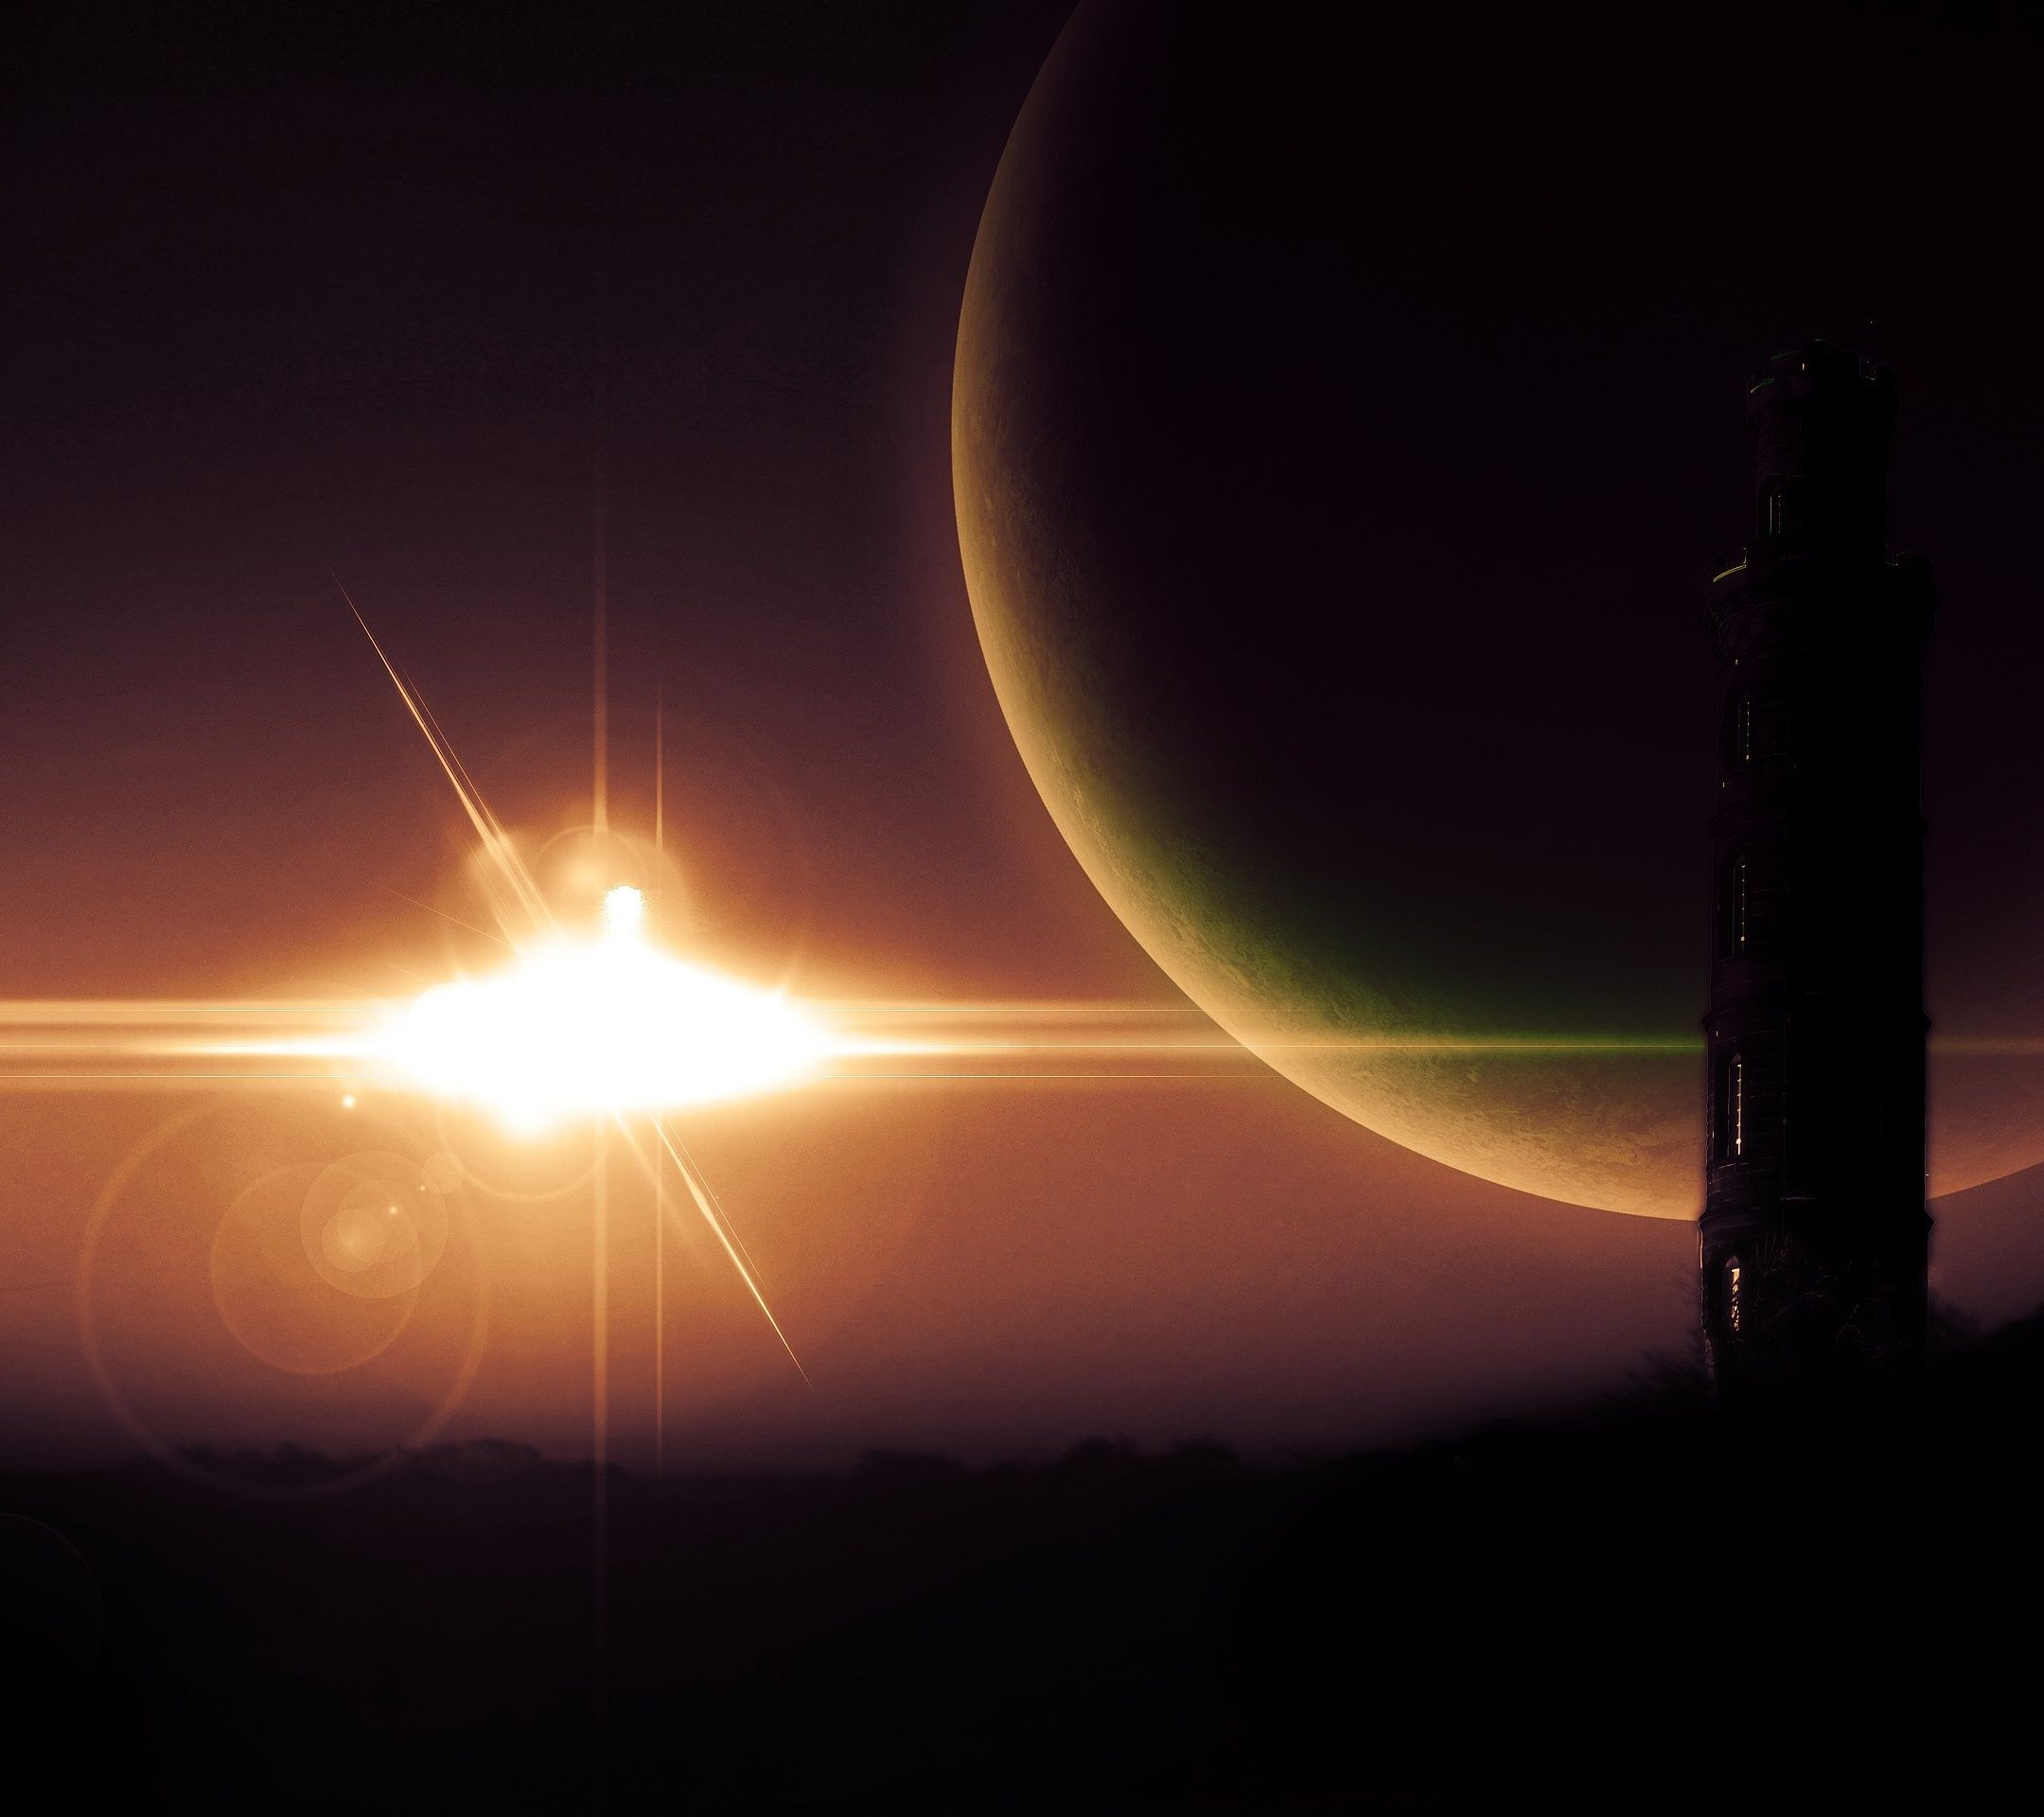 star tower silhouetted planet galaxy space android wallpaper mobile9